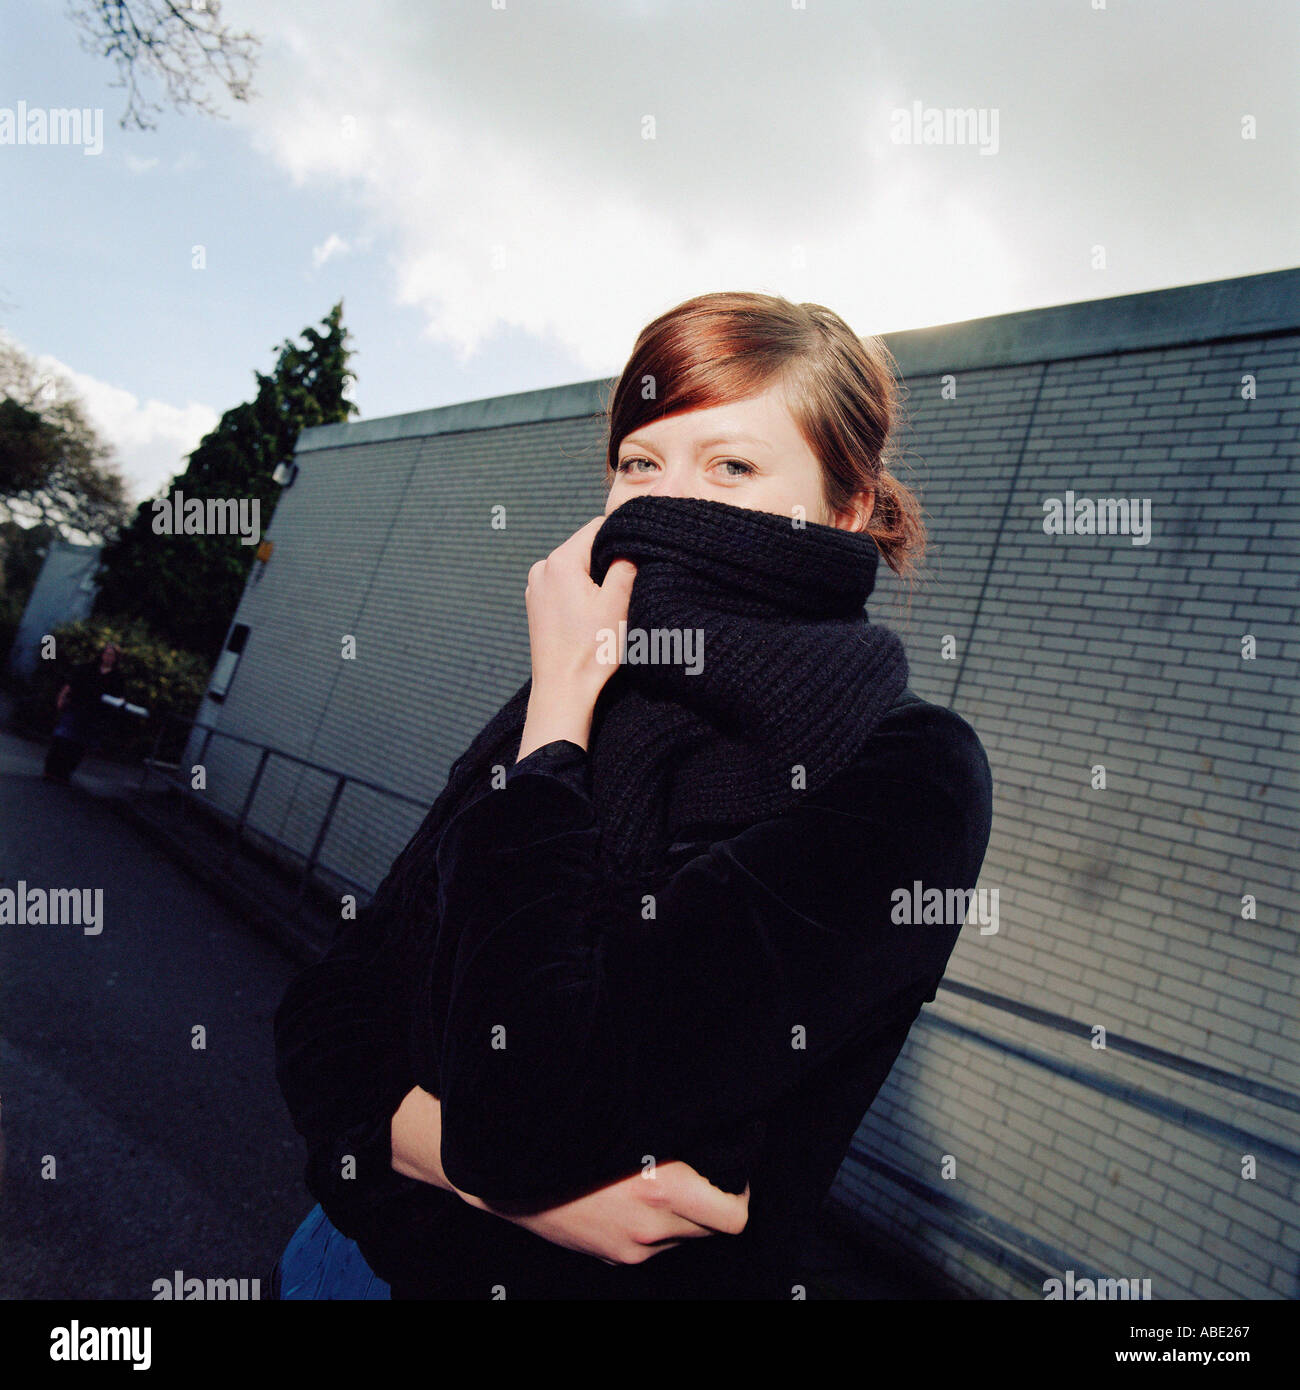 Girl covering her face with wool scarf - Stock Image